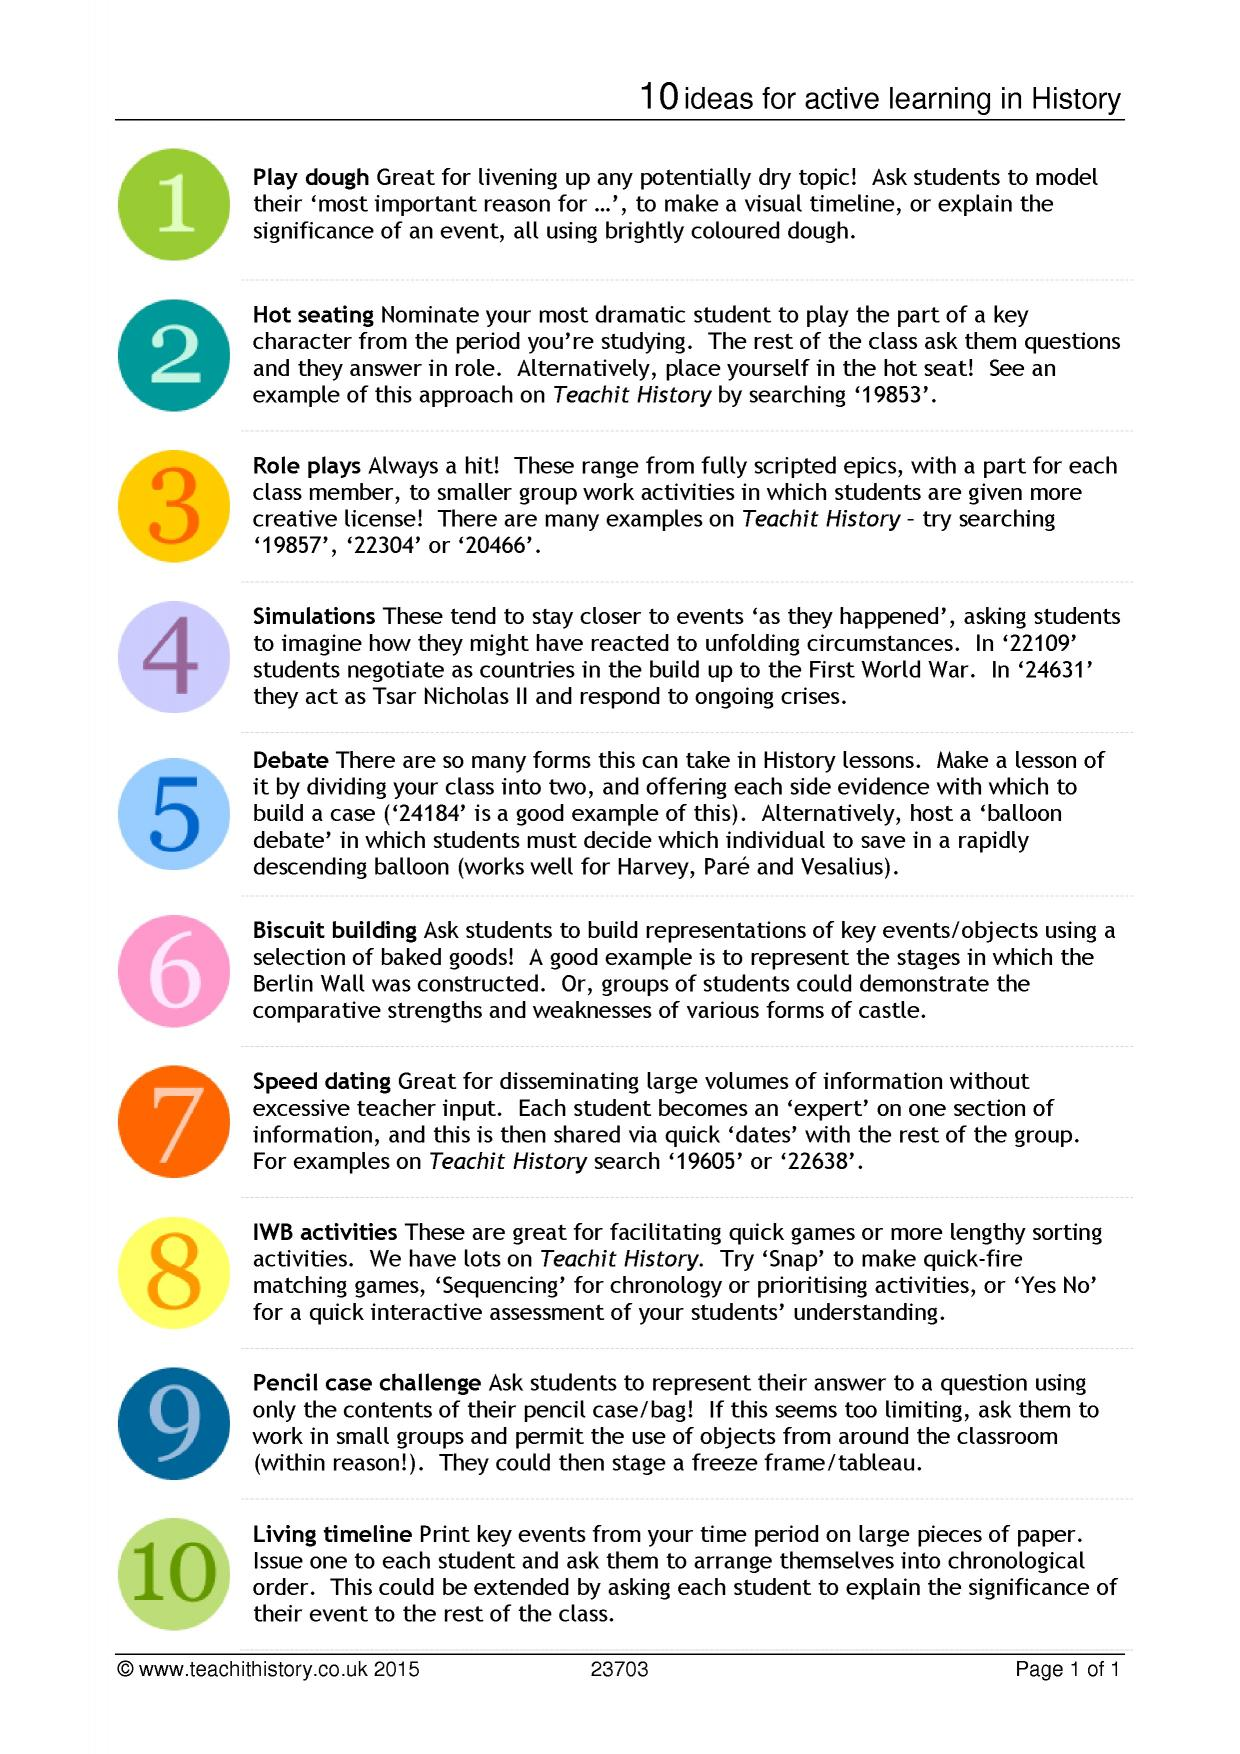 10 ideas for active learning in History - Teaching templates and tools